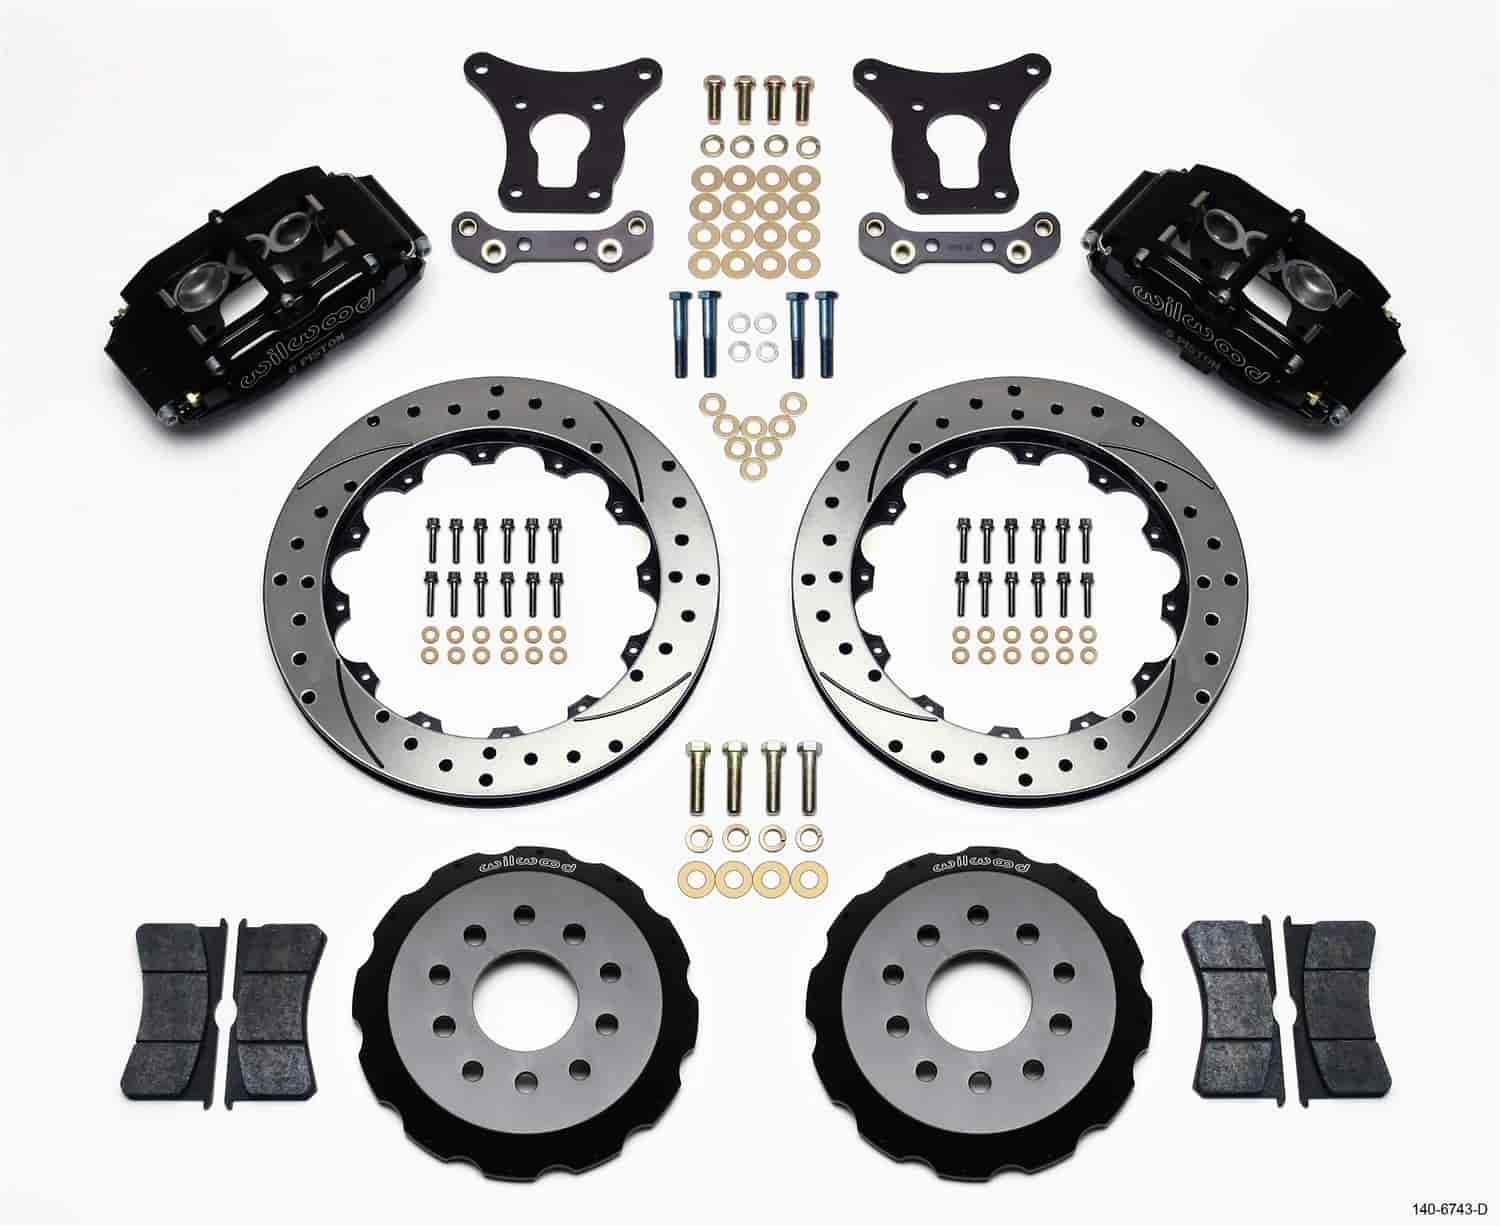 Wilwood 140-6743-D - Wilwood Superlite 6 Big Brake Front Hat Kits